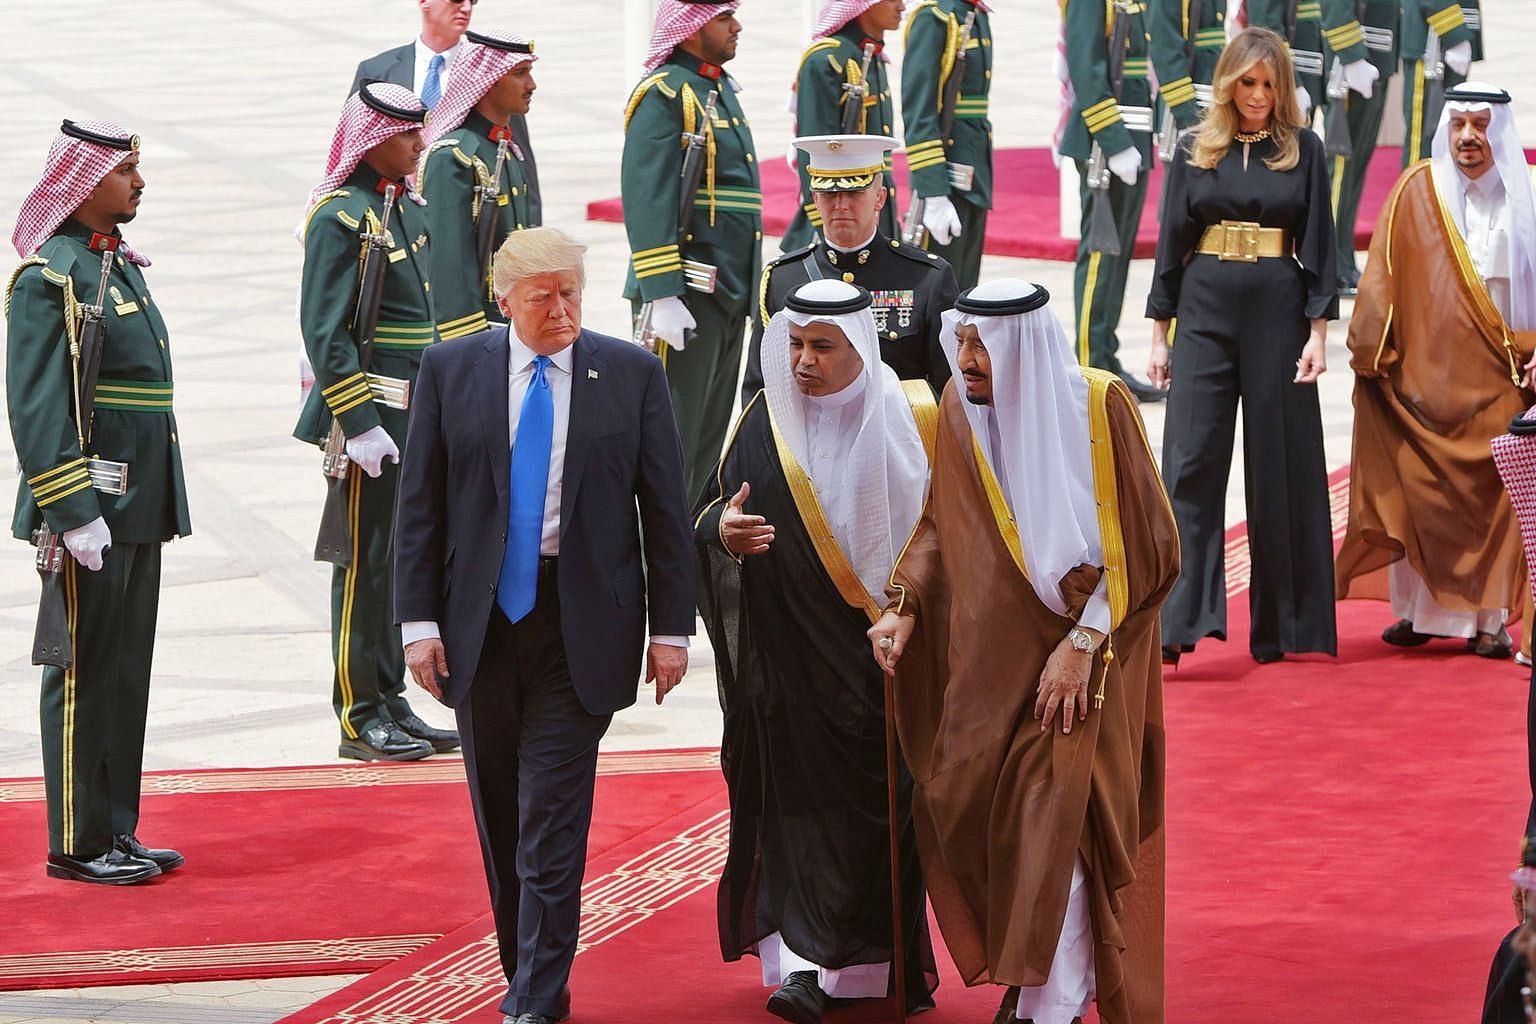 US President Donald Trump being welcomed by Saudi King Salman bin Abdulaziz al-Saud (right) at King Khalid International Airport in Riyadh on May 20. The writer says there was a palpable sense of relief when Mr Trump went to Riyadh. The US was back.